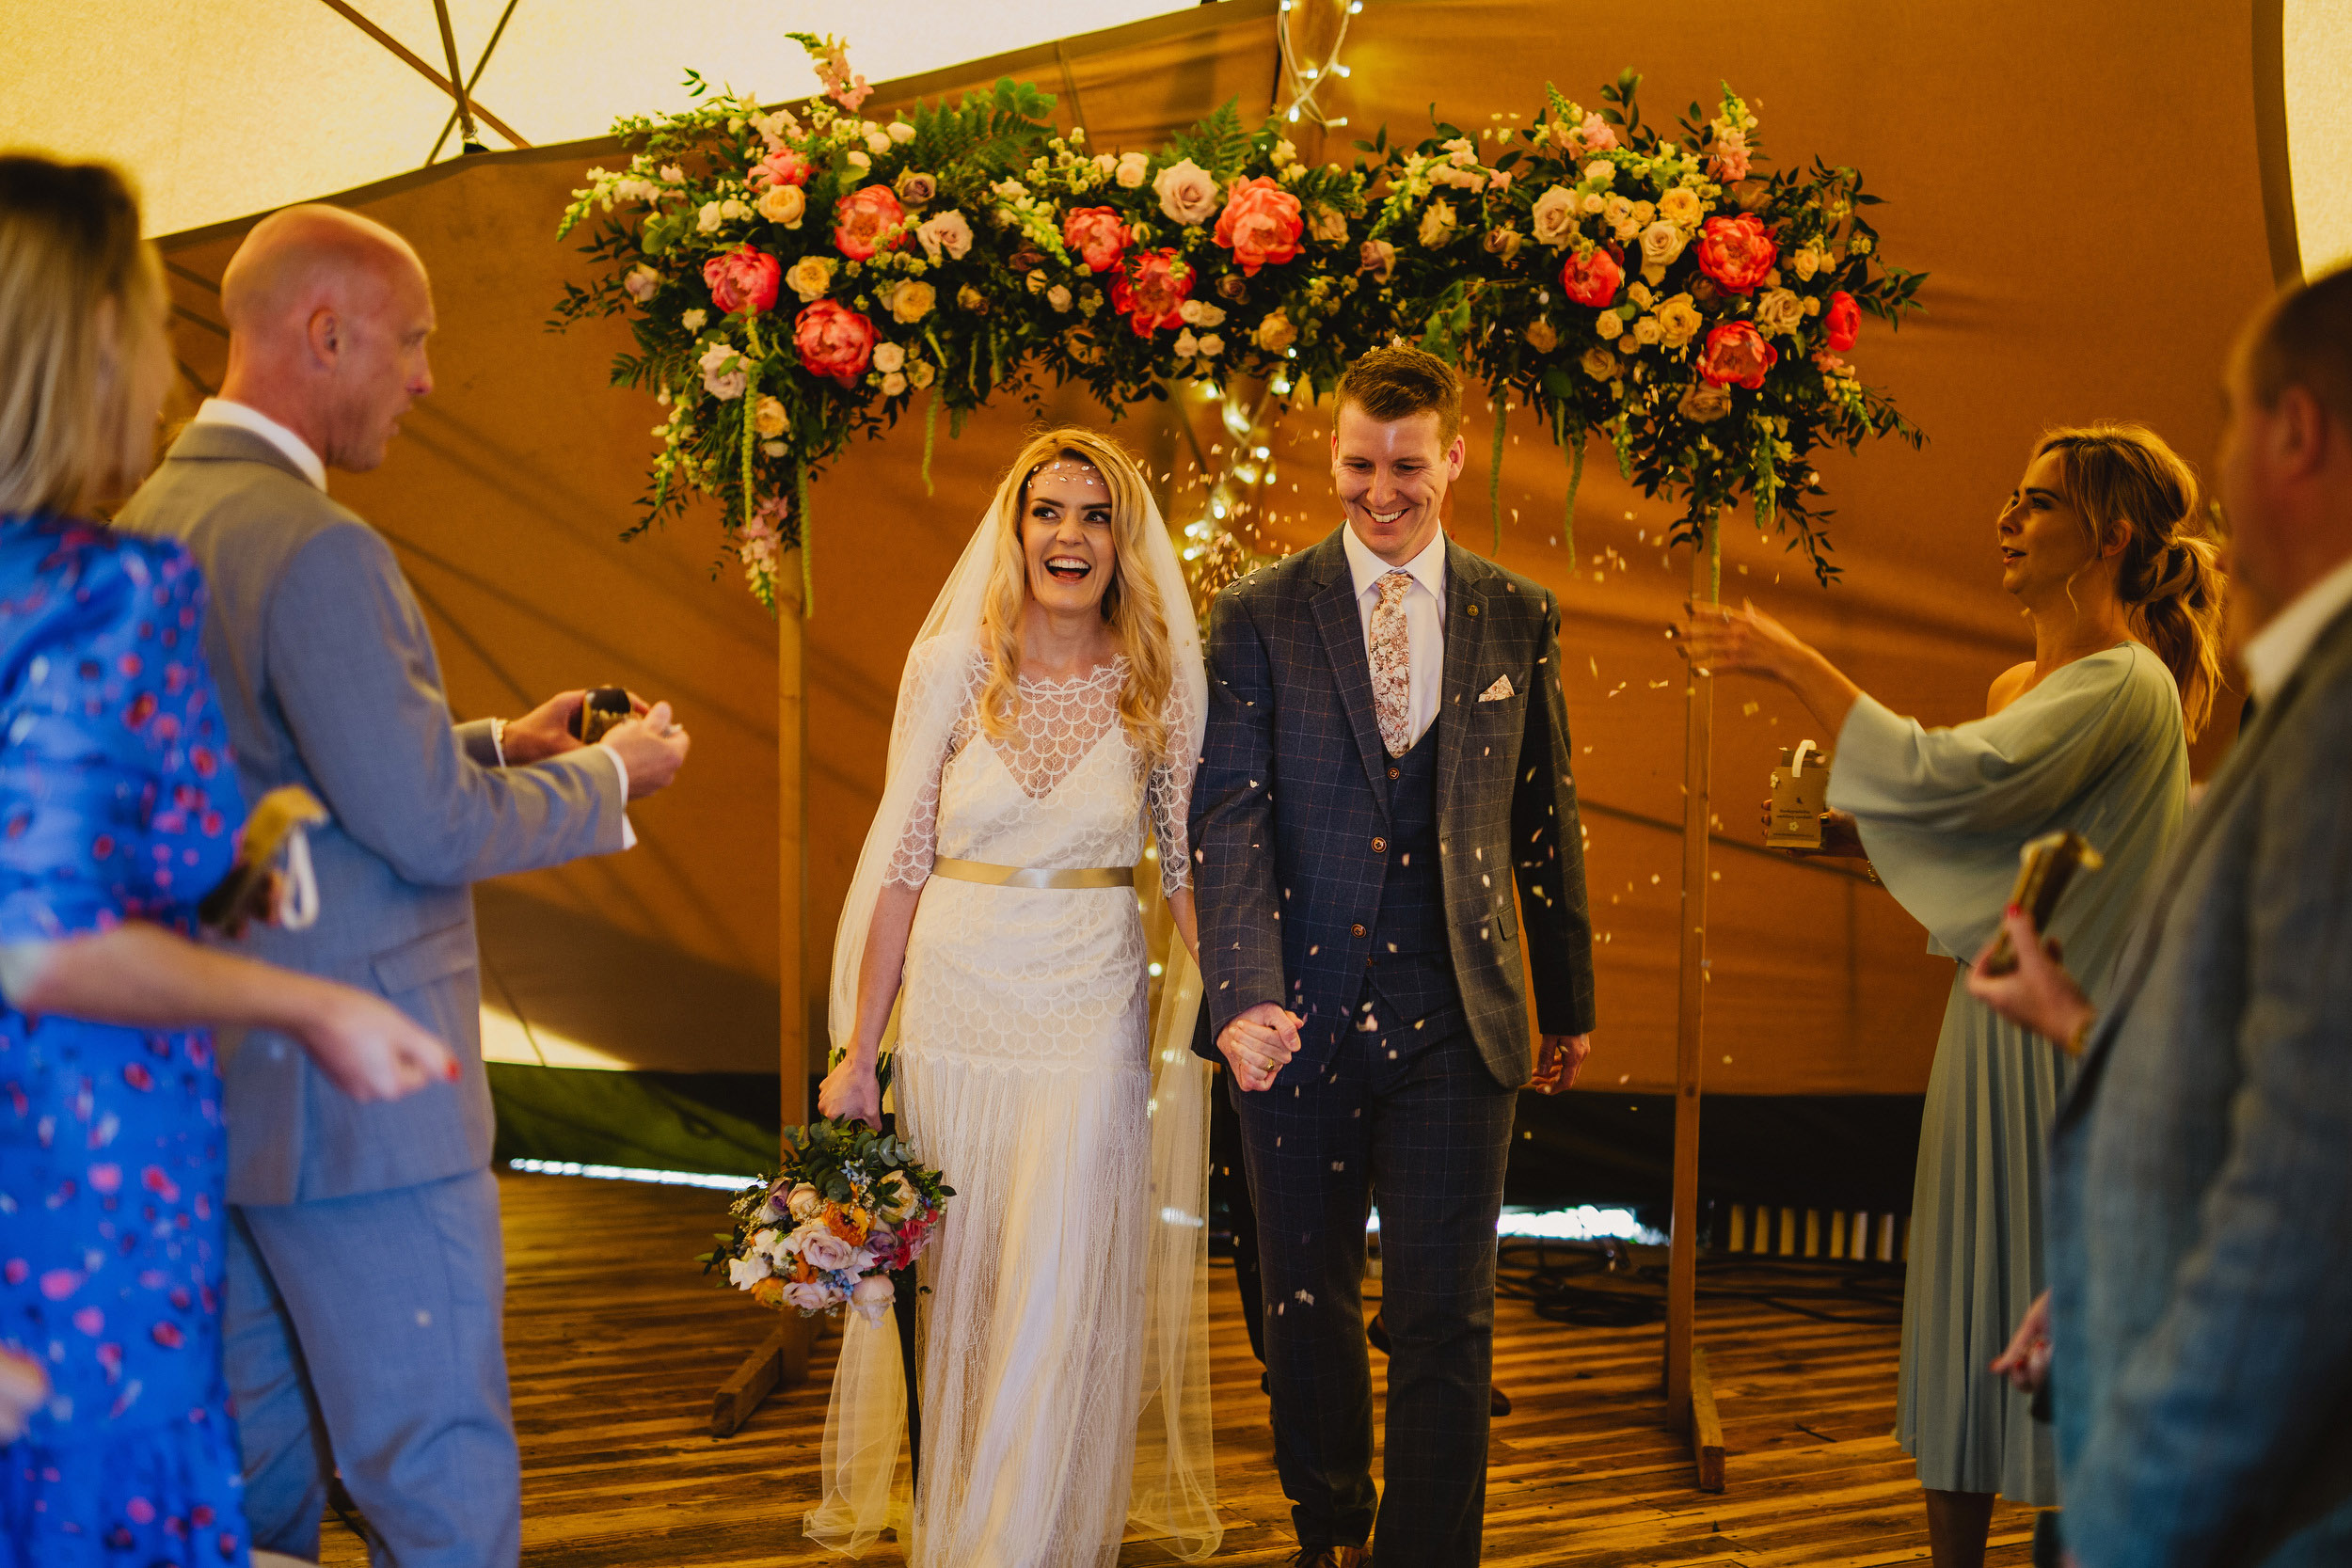 Gemma-Bohemian-Outdoor-Tipi-Wedding-Laid-Back-Relaxed-Family-Wedding-Kate-Beaumont-Astilbe-by-S6-Photography-Sheffield-21.jpg